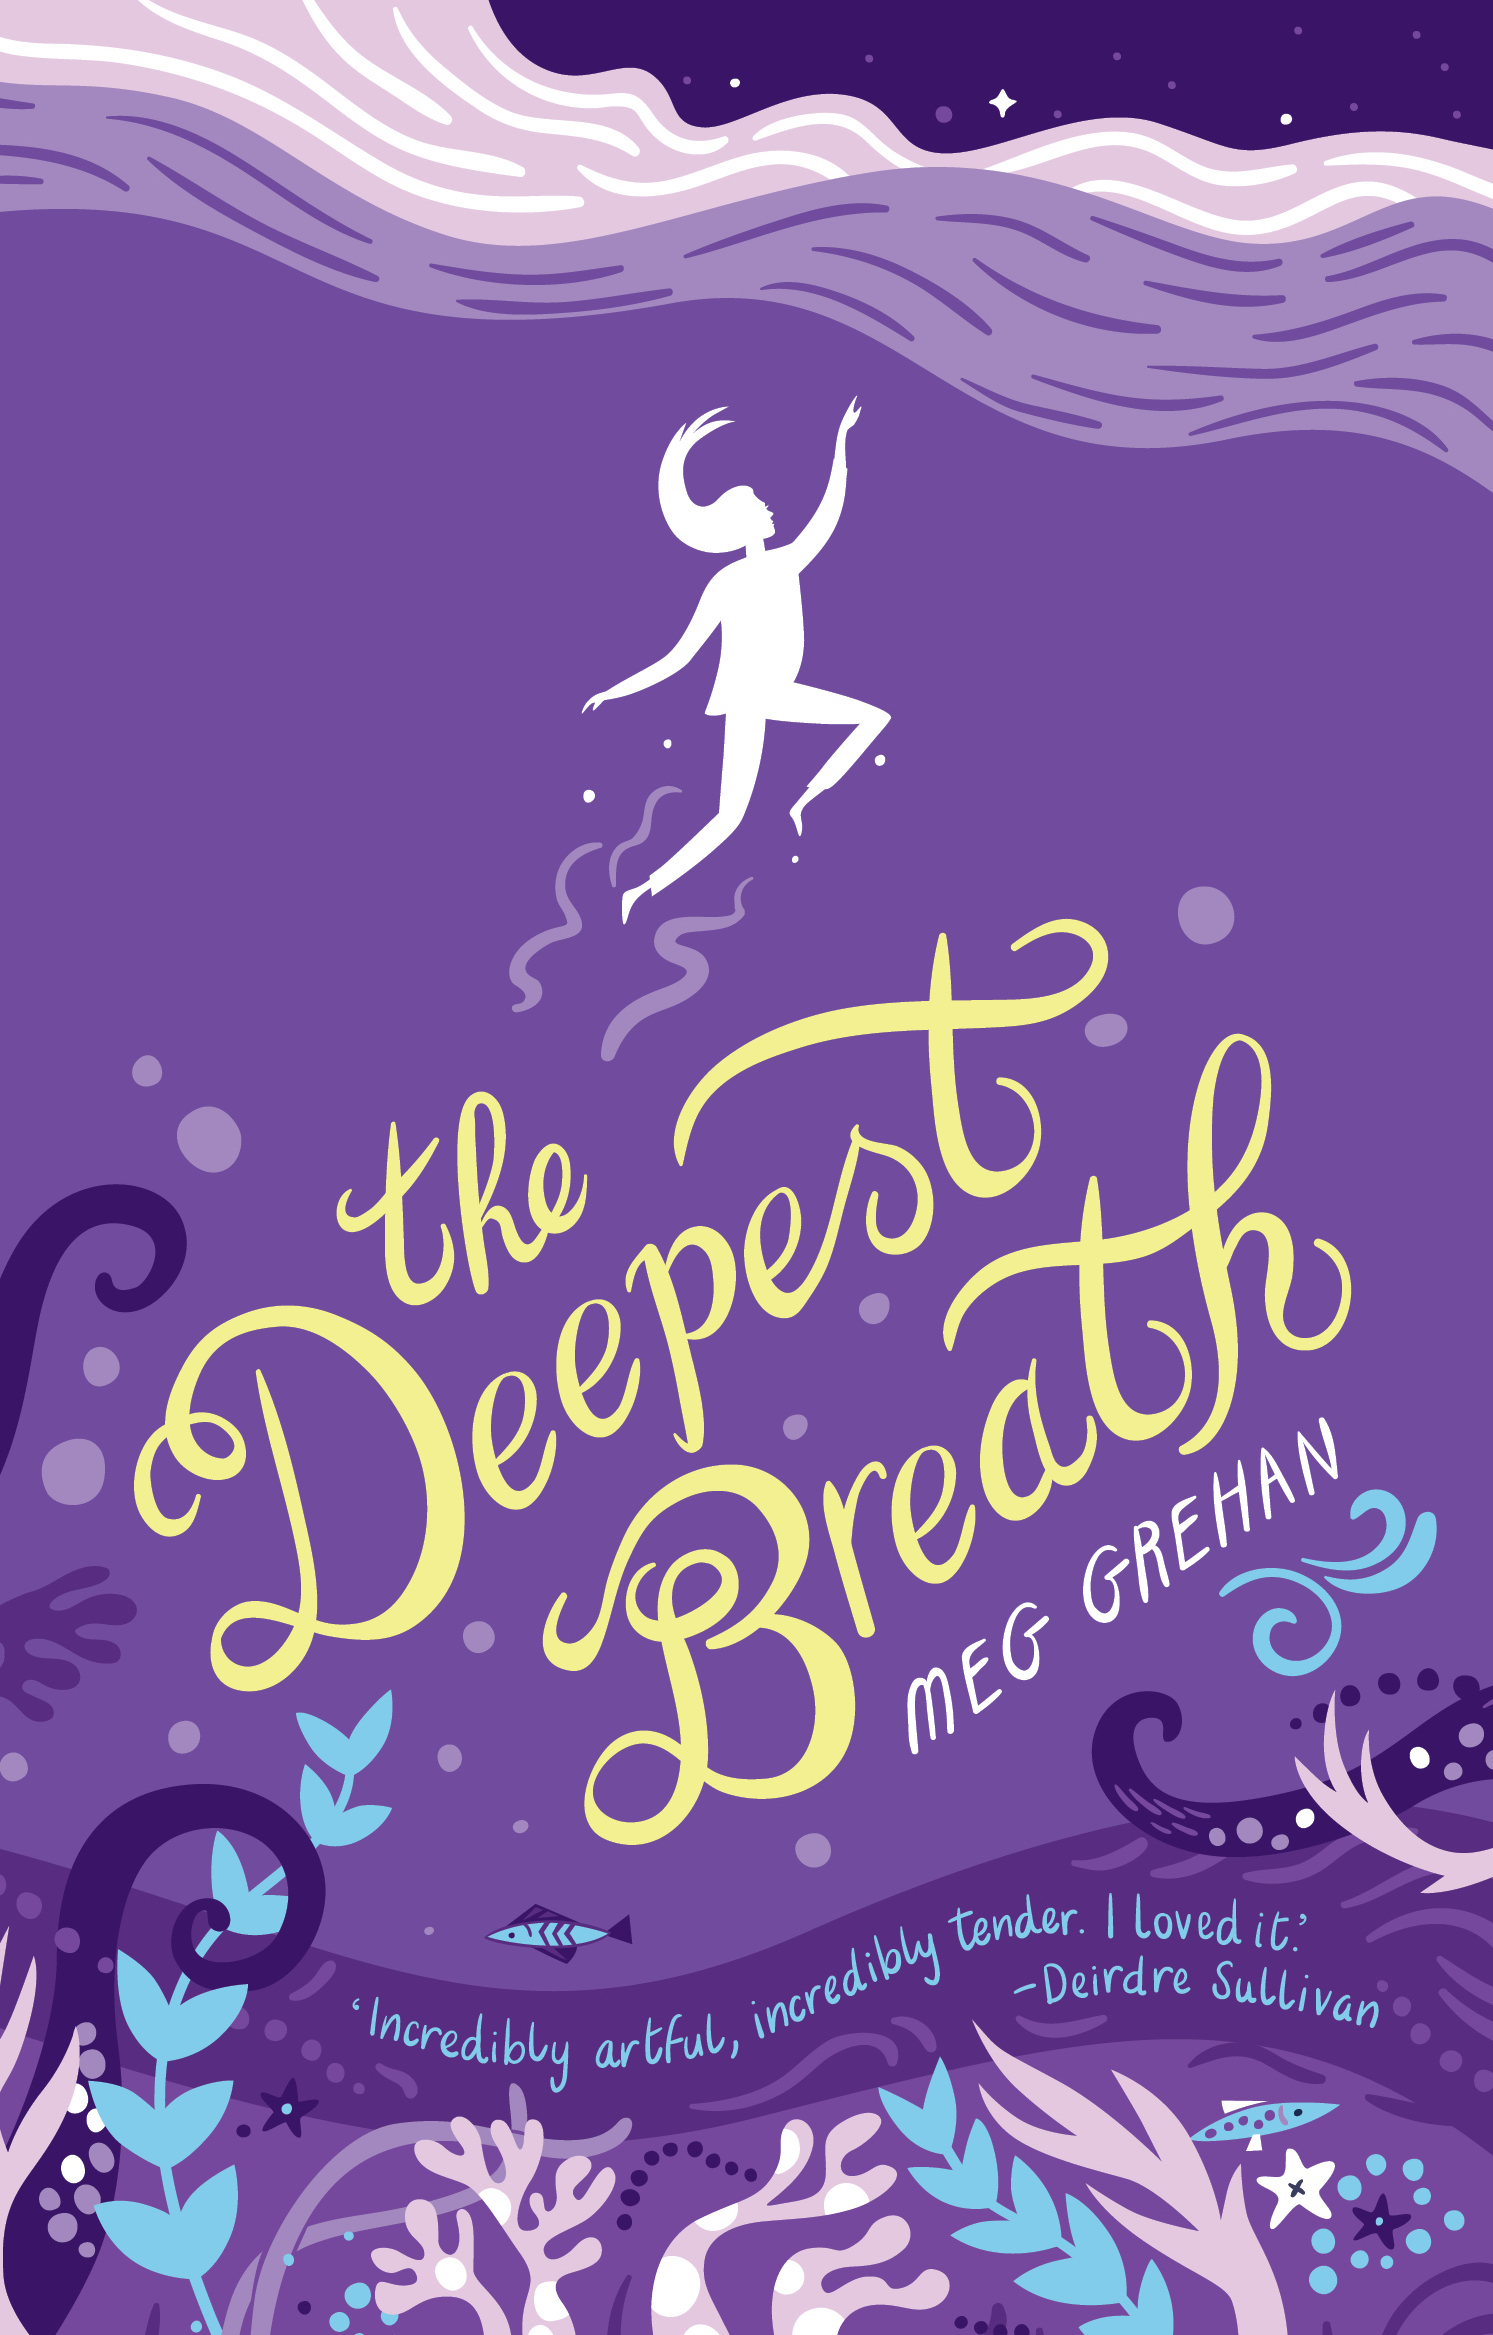 Image for The deepest breath